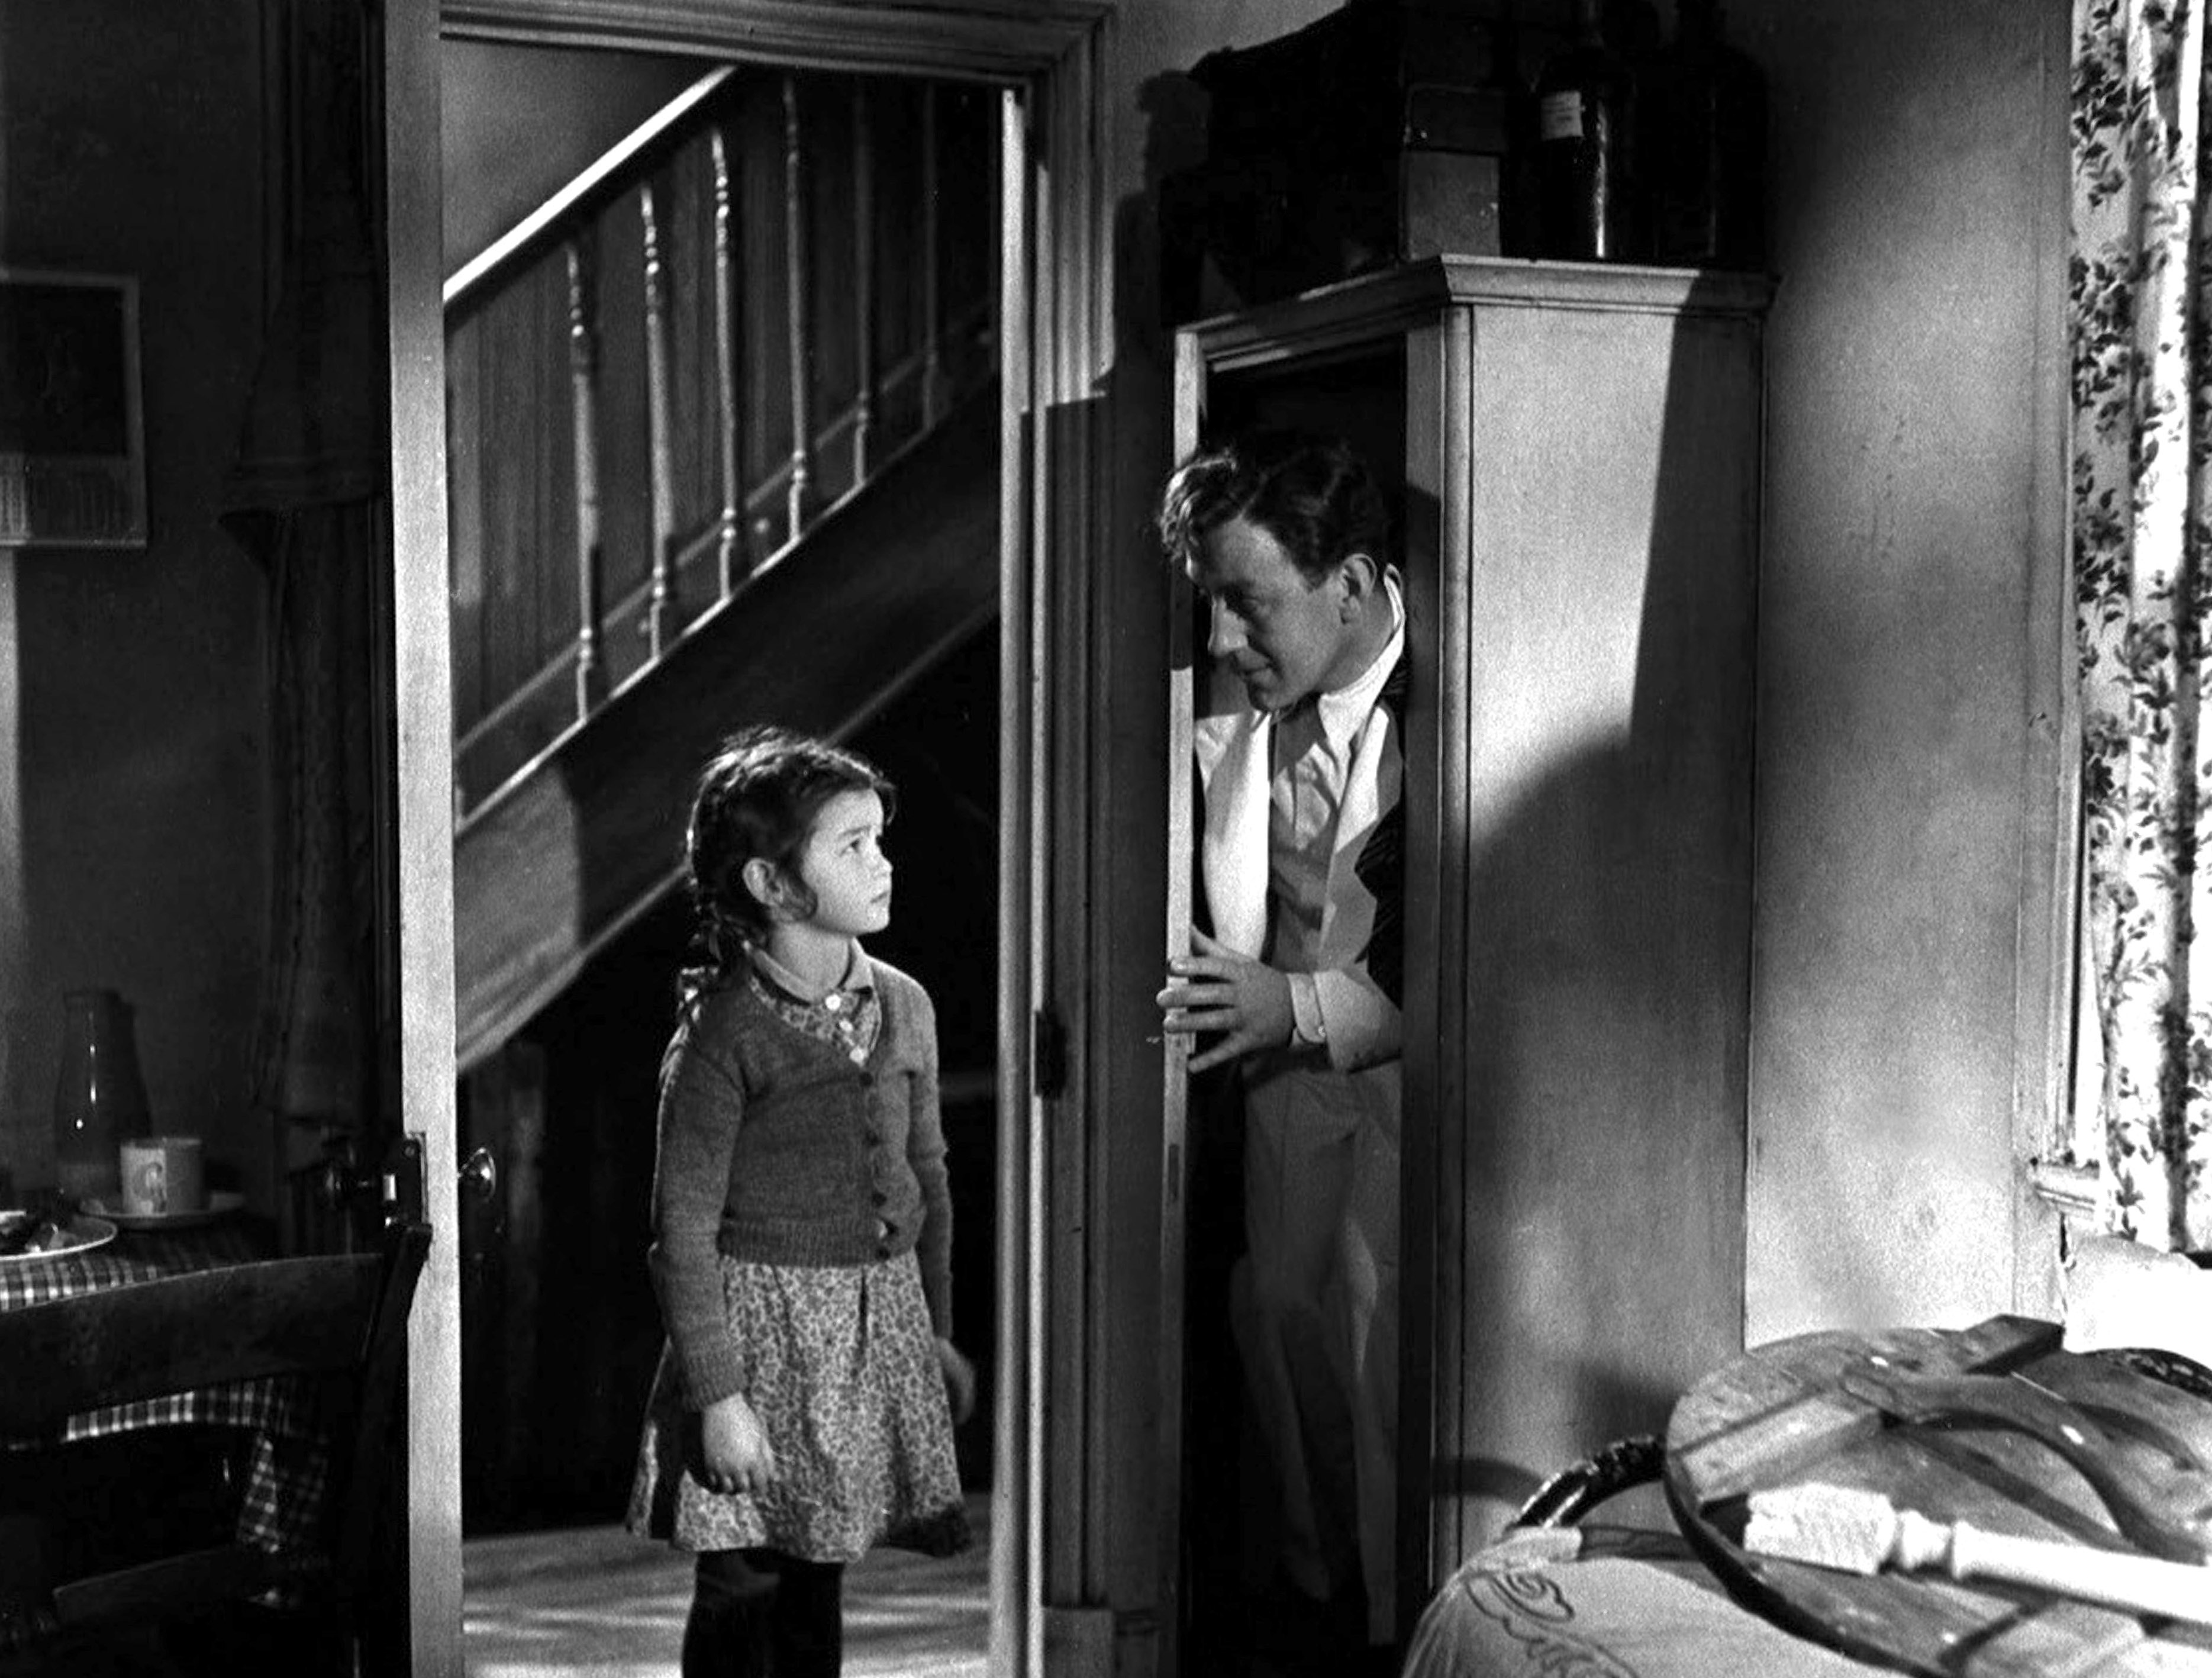 Alec Guiness hiding in a wardrobe from a young girl (from the movie, The Man in the White Suit)